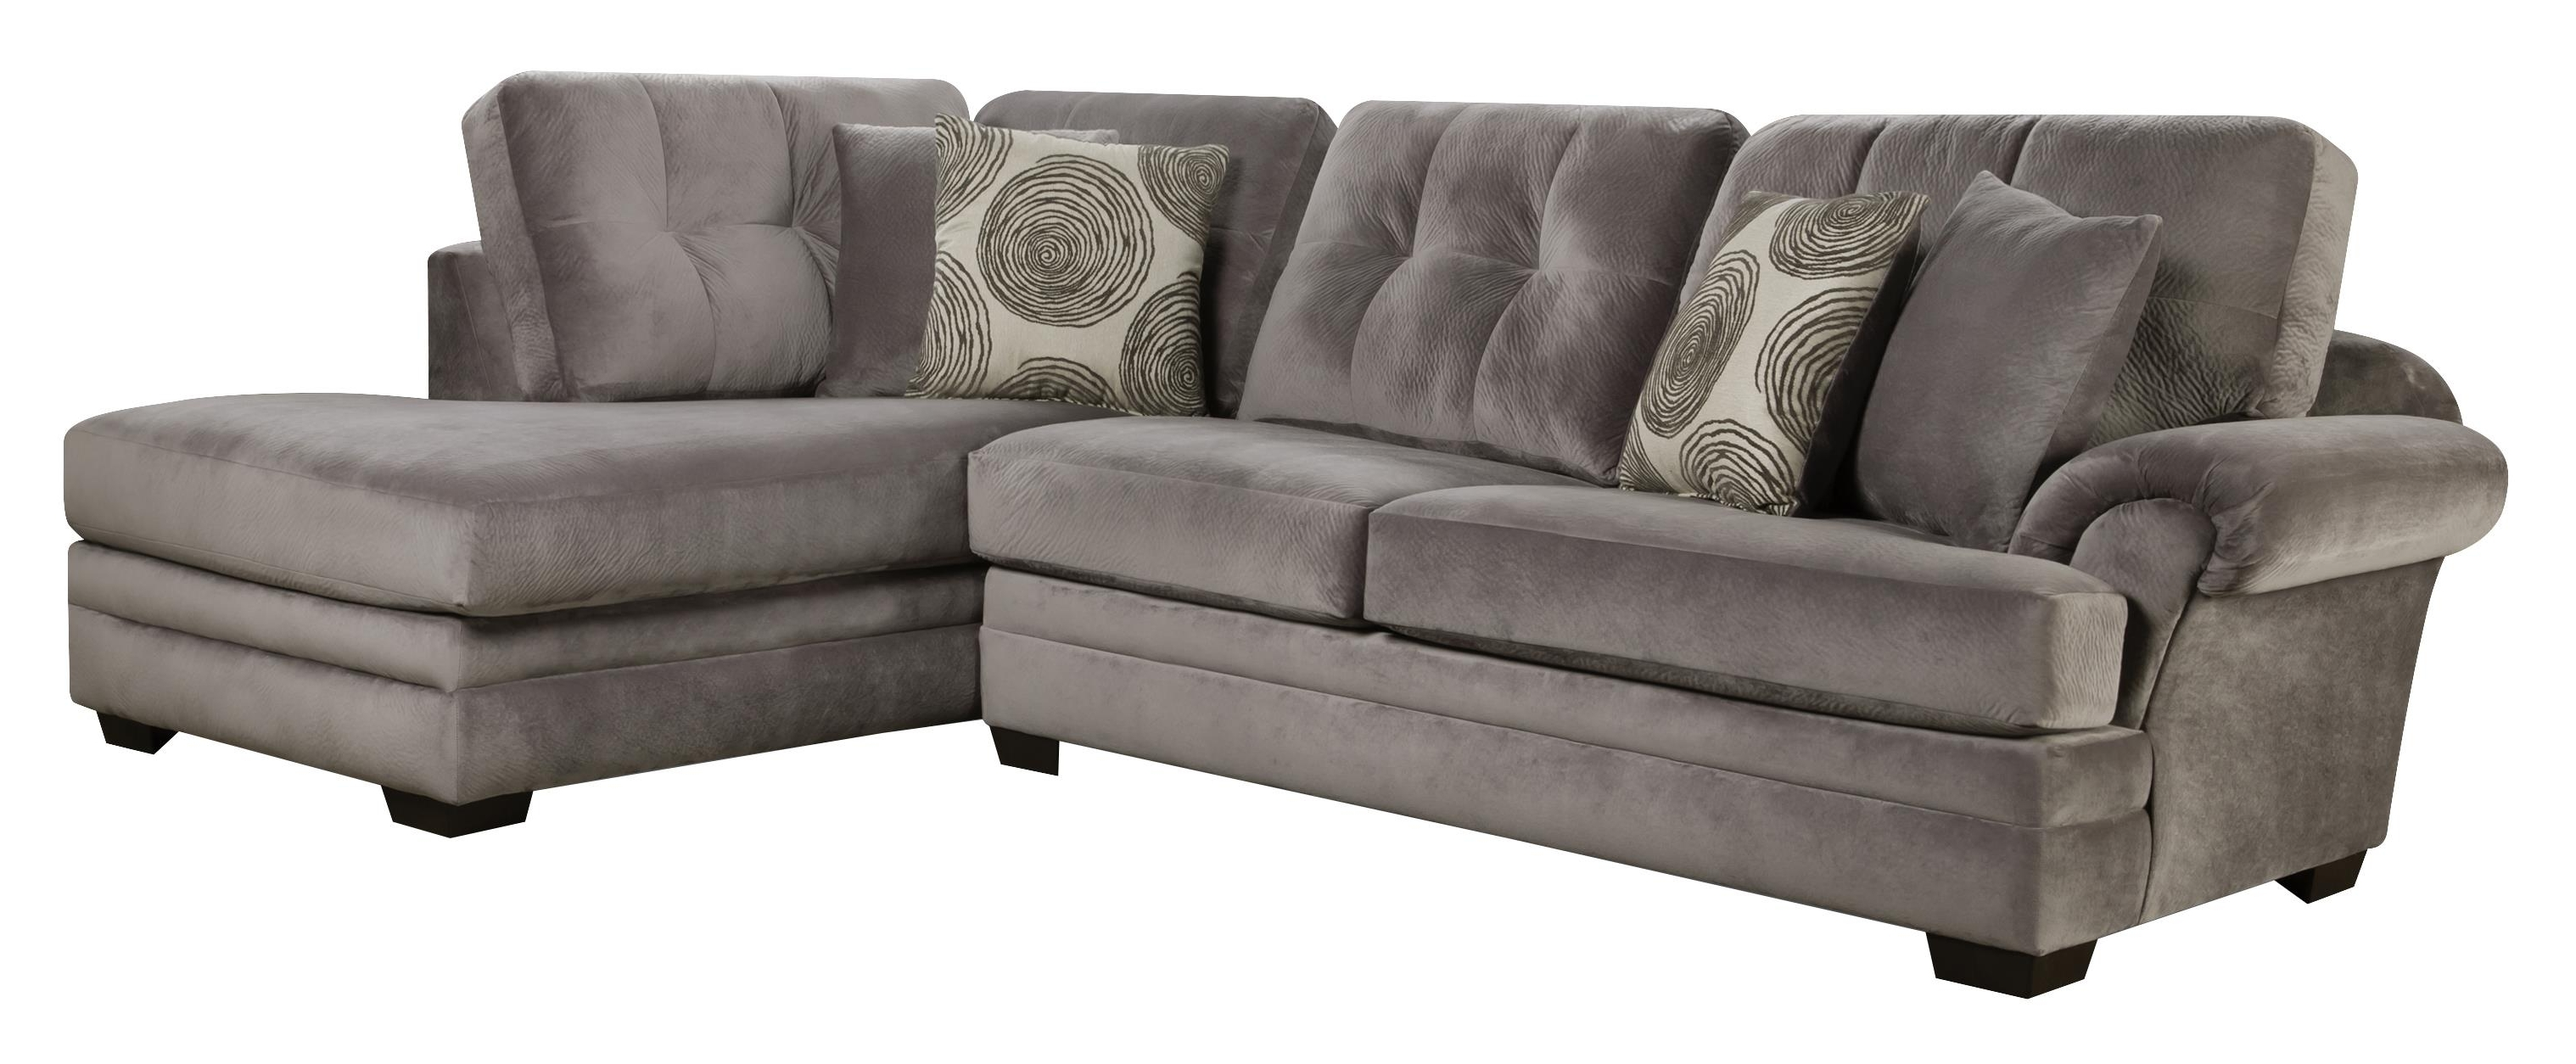 Sectional Sofa With Chaise (On Right Side)Corinthian (View 10 of 20)